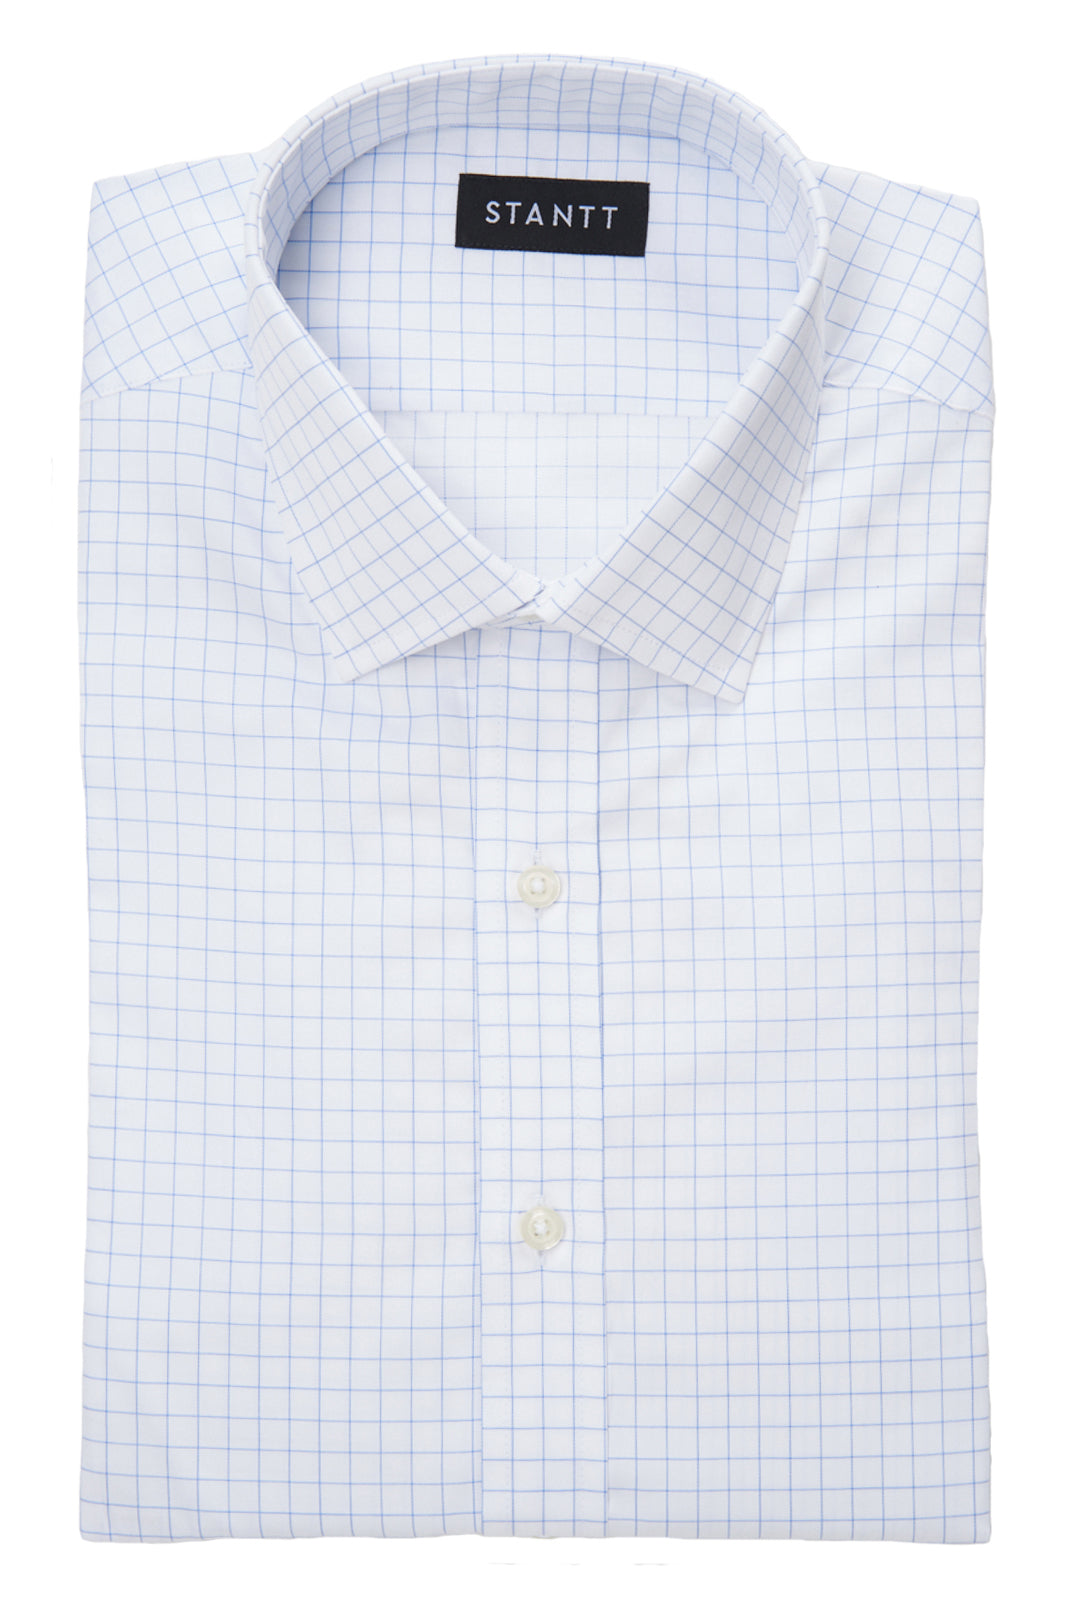 Blue Hairline Windowpane: Modified-Spread Collar, French Cuff